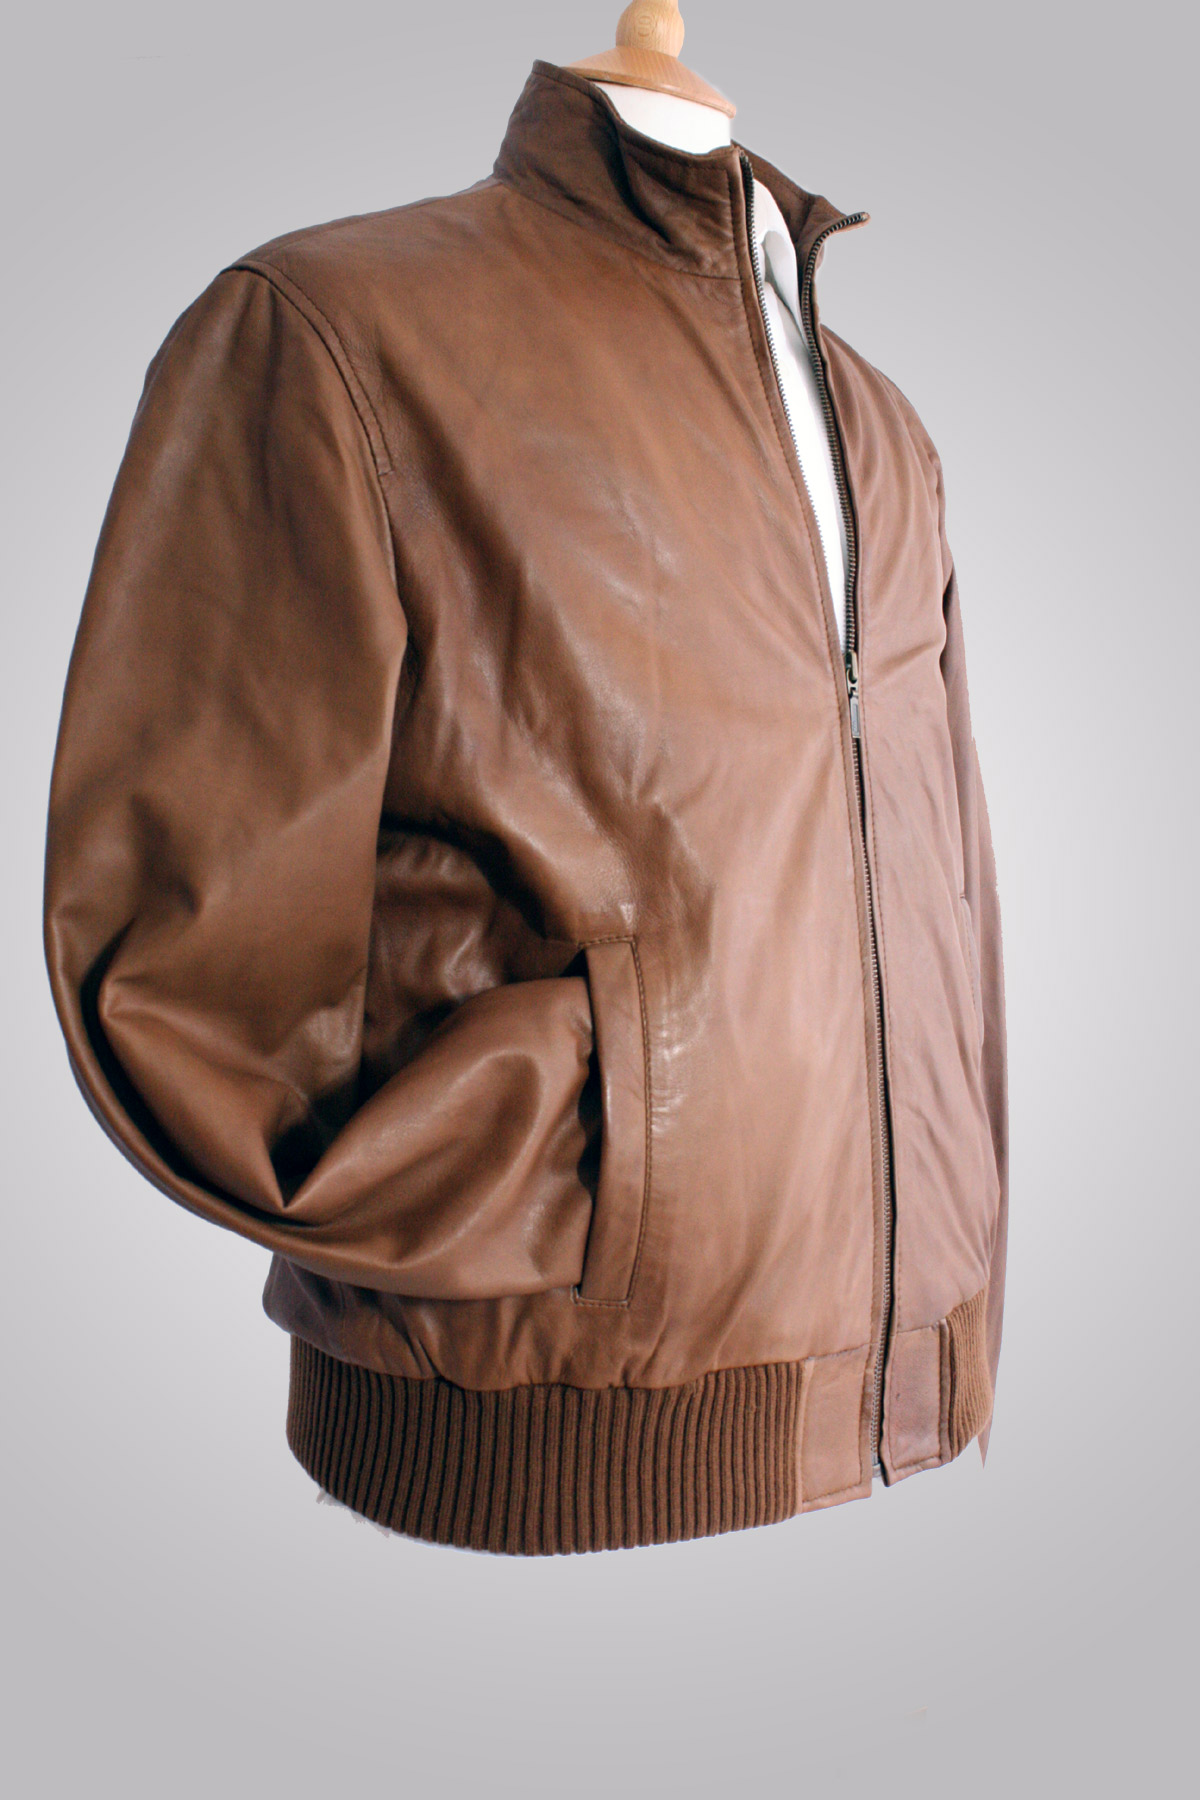 Mens Leather Bomber Jacket | Jacket Designs Pictures